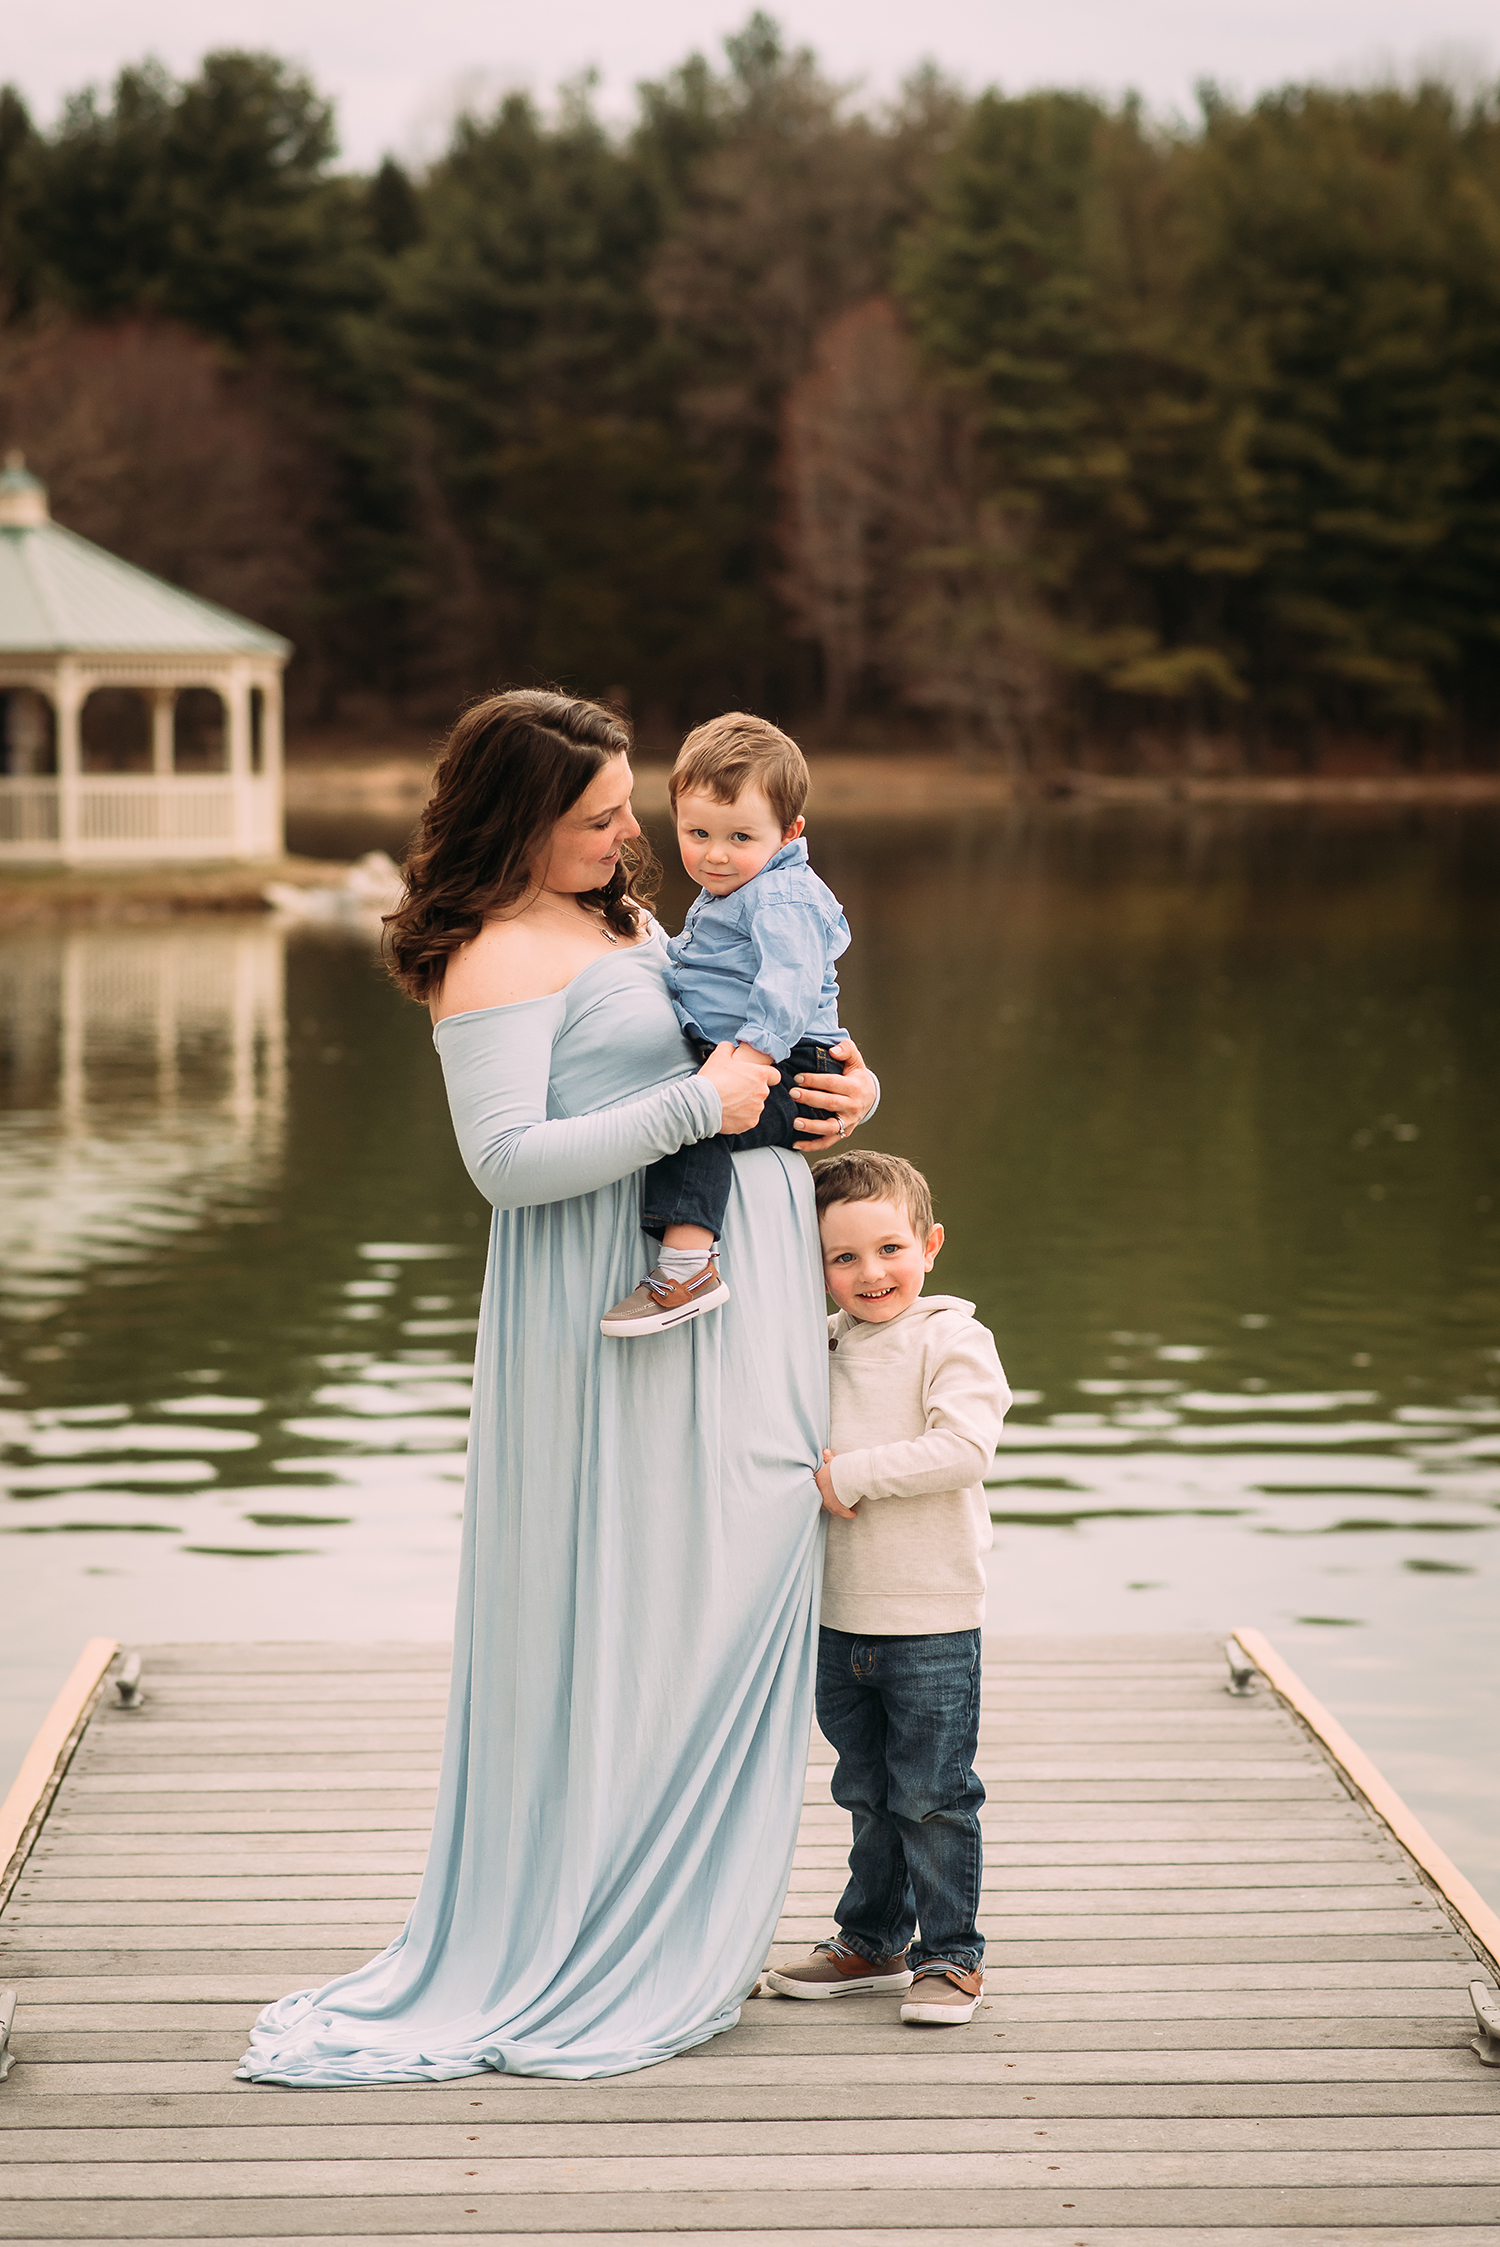 Baltimore Maryland Newborn Maternity Family Photographer Jessica Fenfert